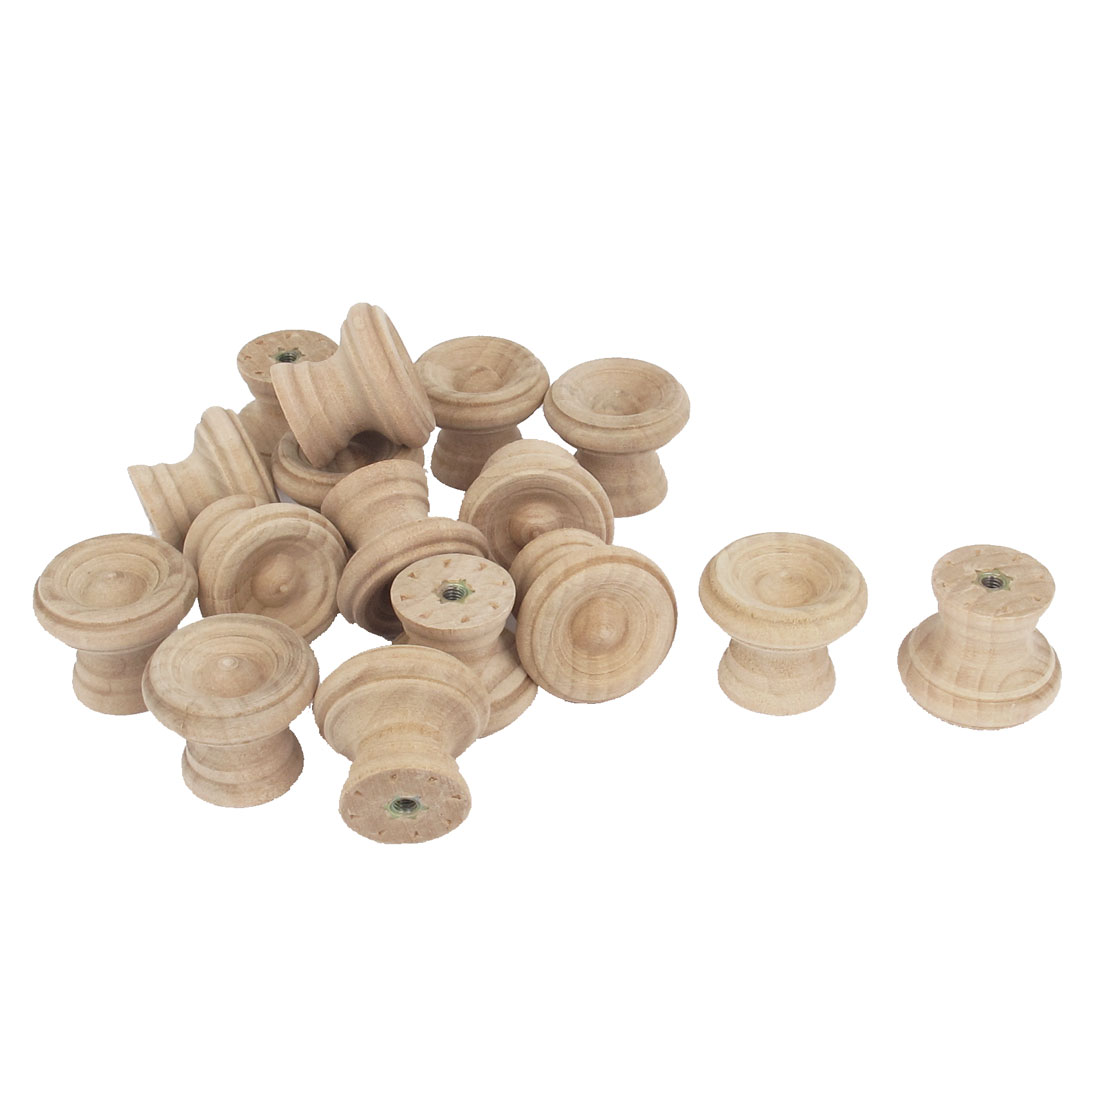 Wooden Round Shaped Cabinet Cupboard Door Drawer Pull Knob Handle 15Pcs